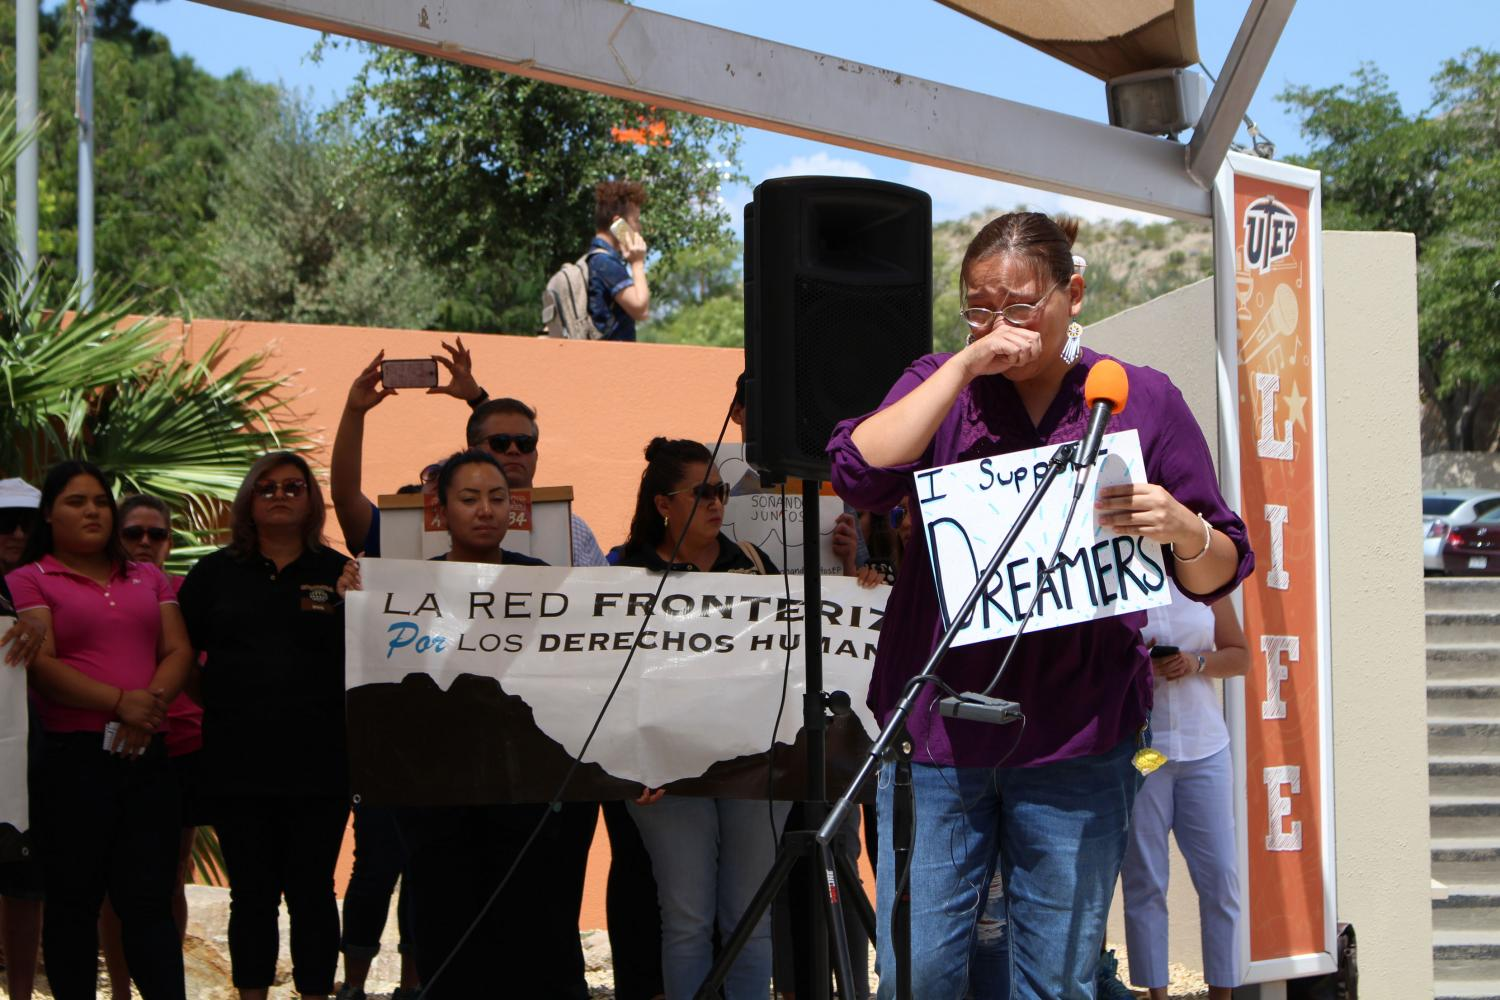 Cheyanne Lozano speaks during the protest.